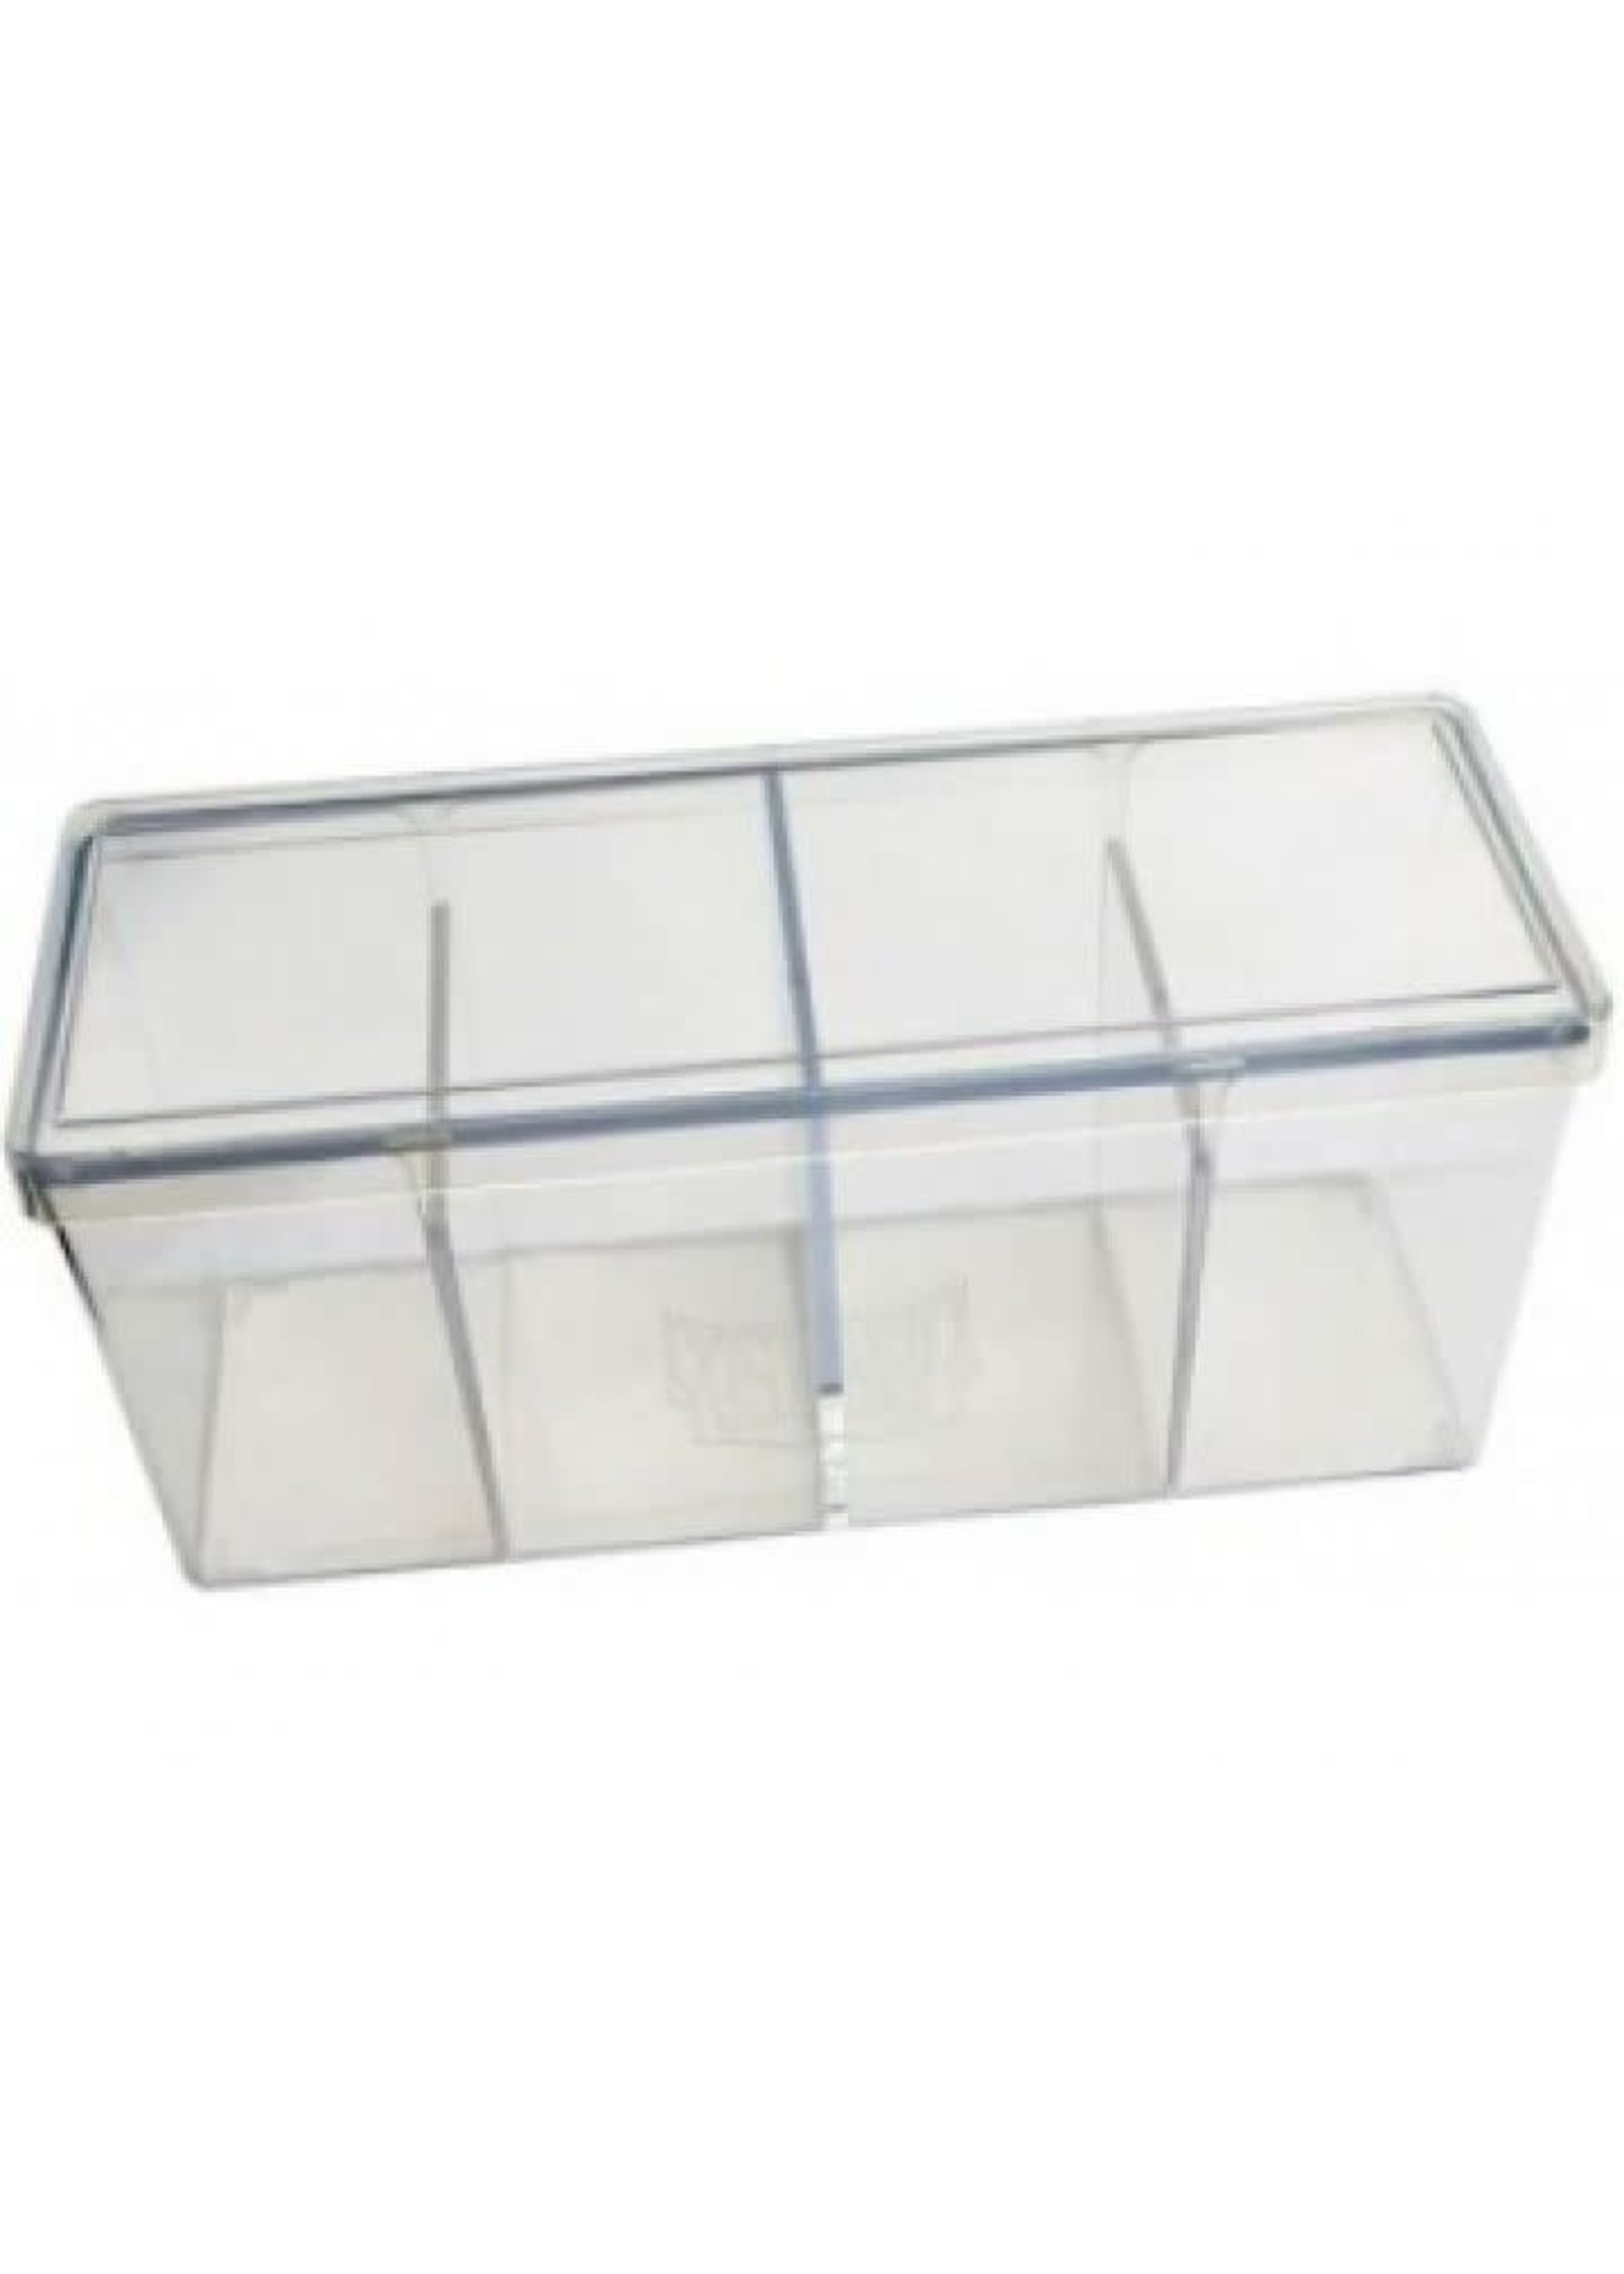 Dragonshield Four Compartment Storage Box Clear